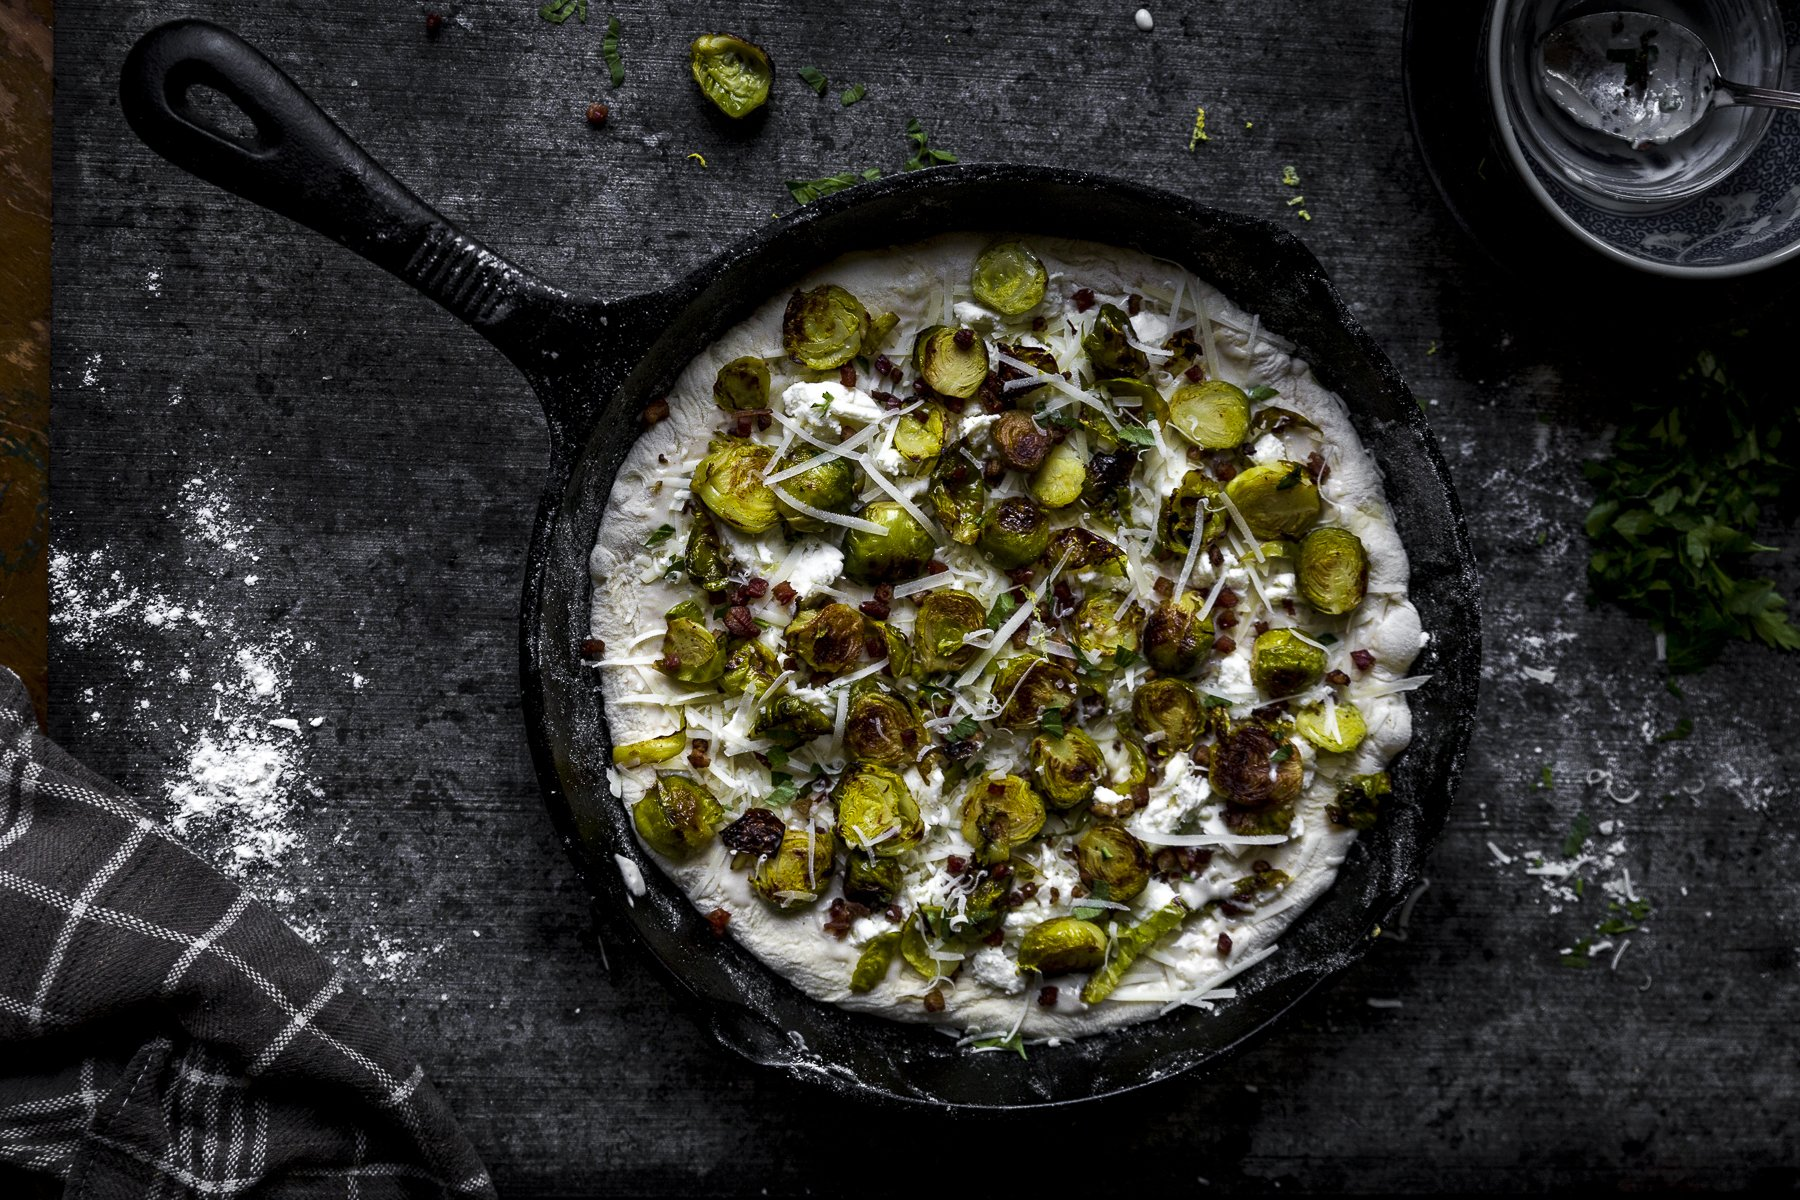 roasted brussel spouts on pizza in a cast iron skillet